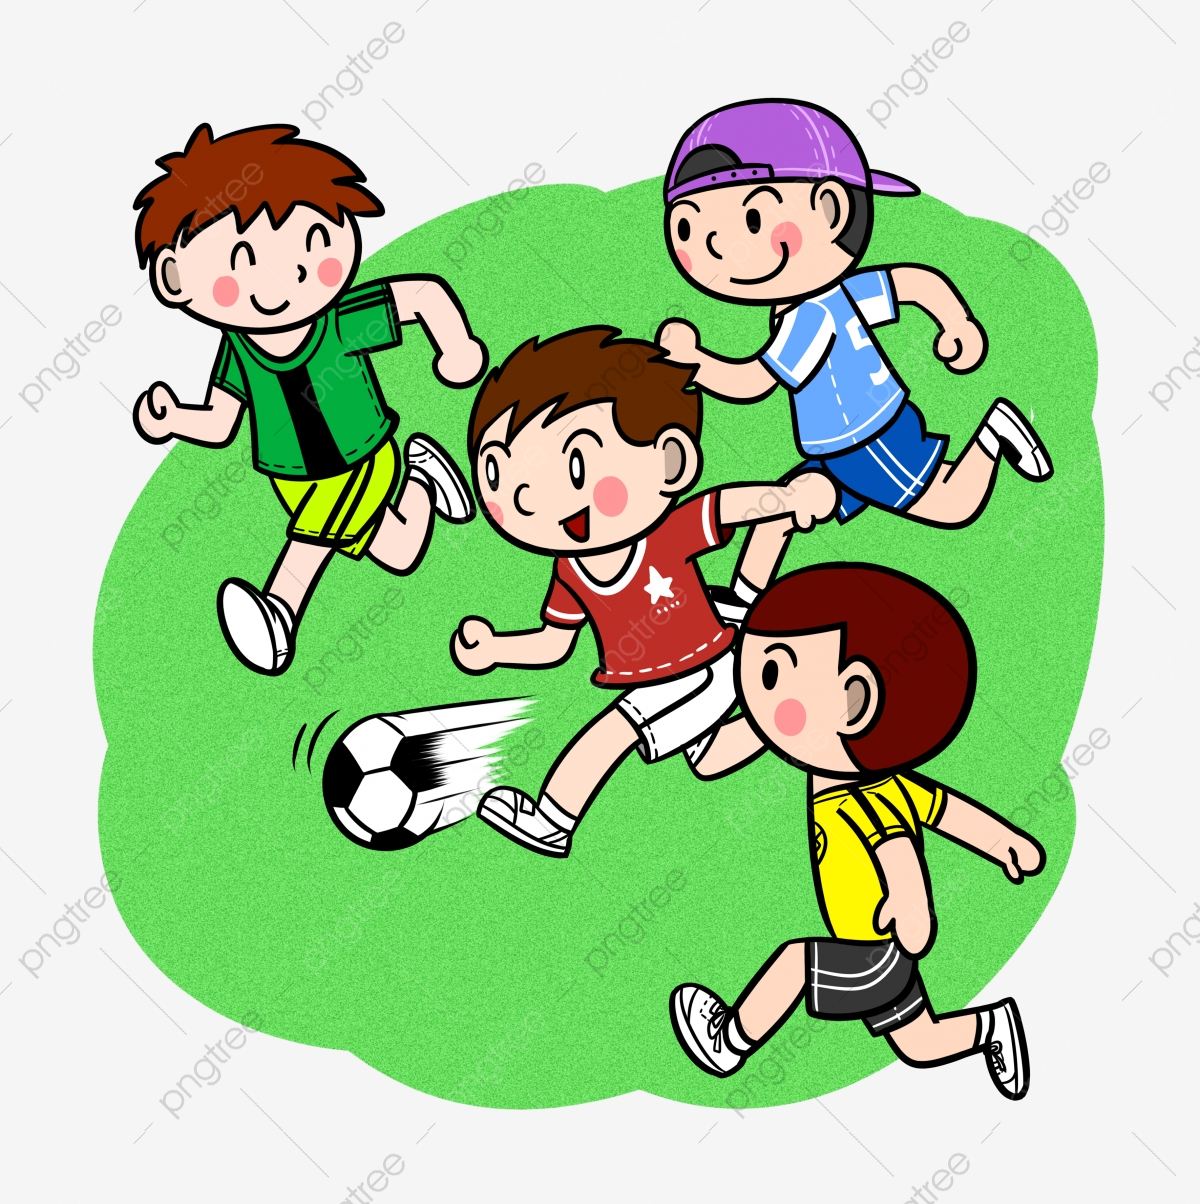 Children Play Football Png Images Vector And Psd Files Free Download On Pngtree